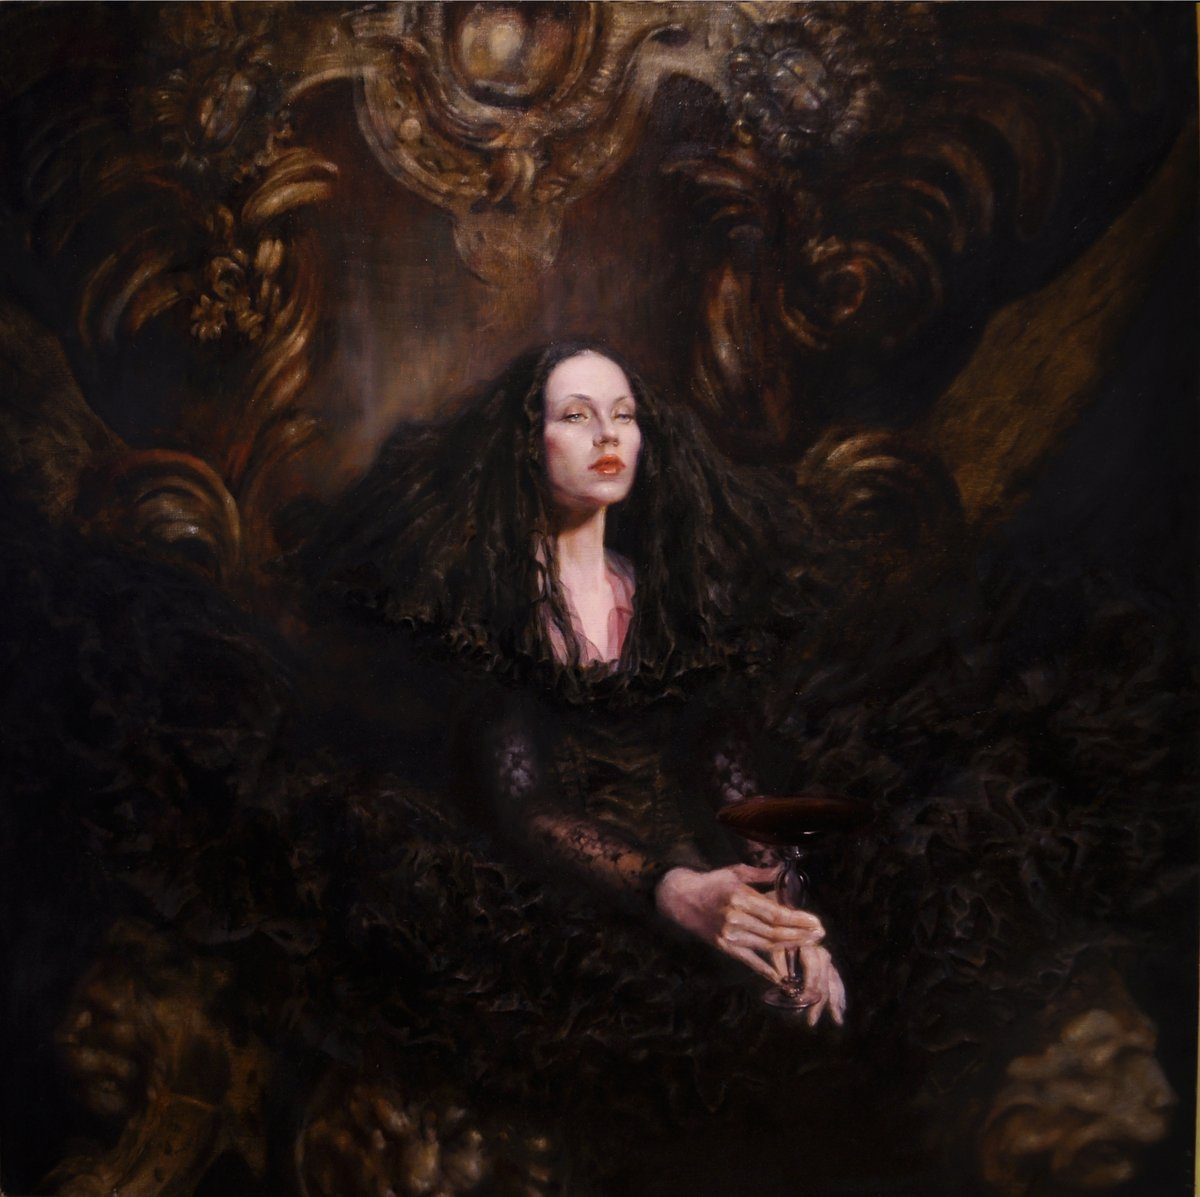 vampire countess who bathed in blood - HD1200×1197